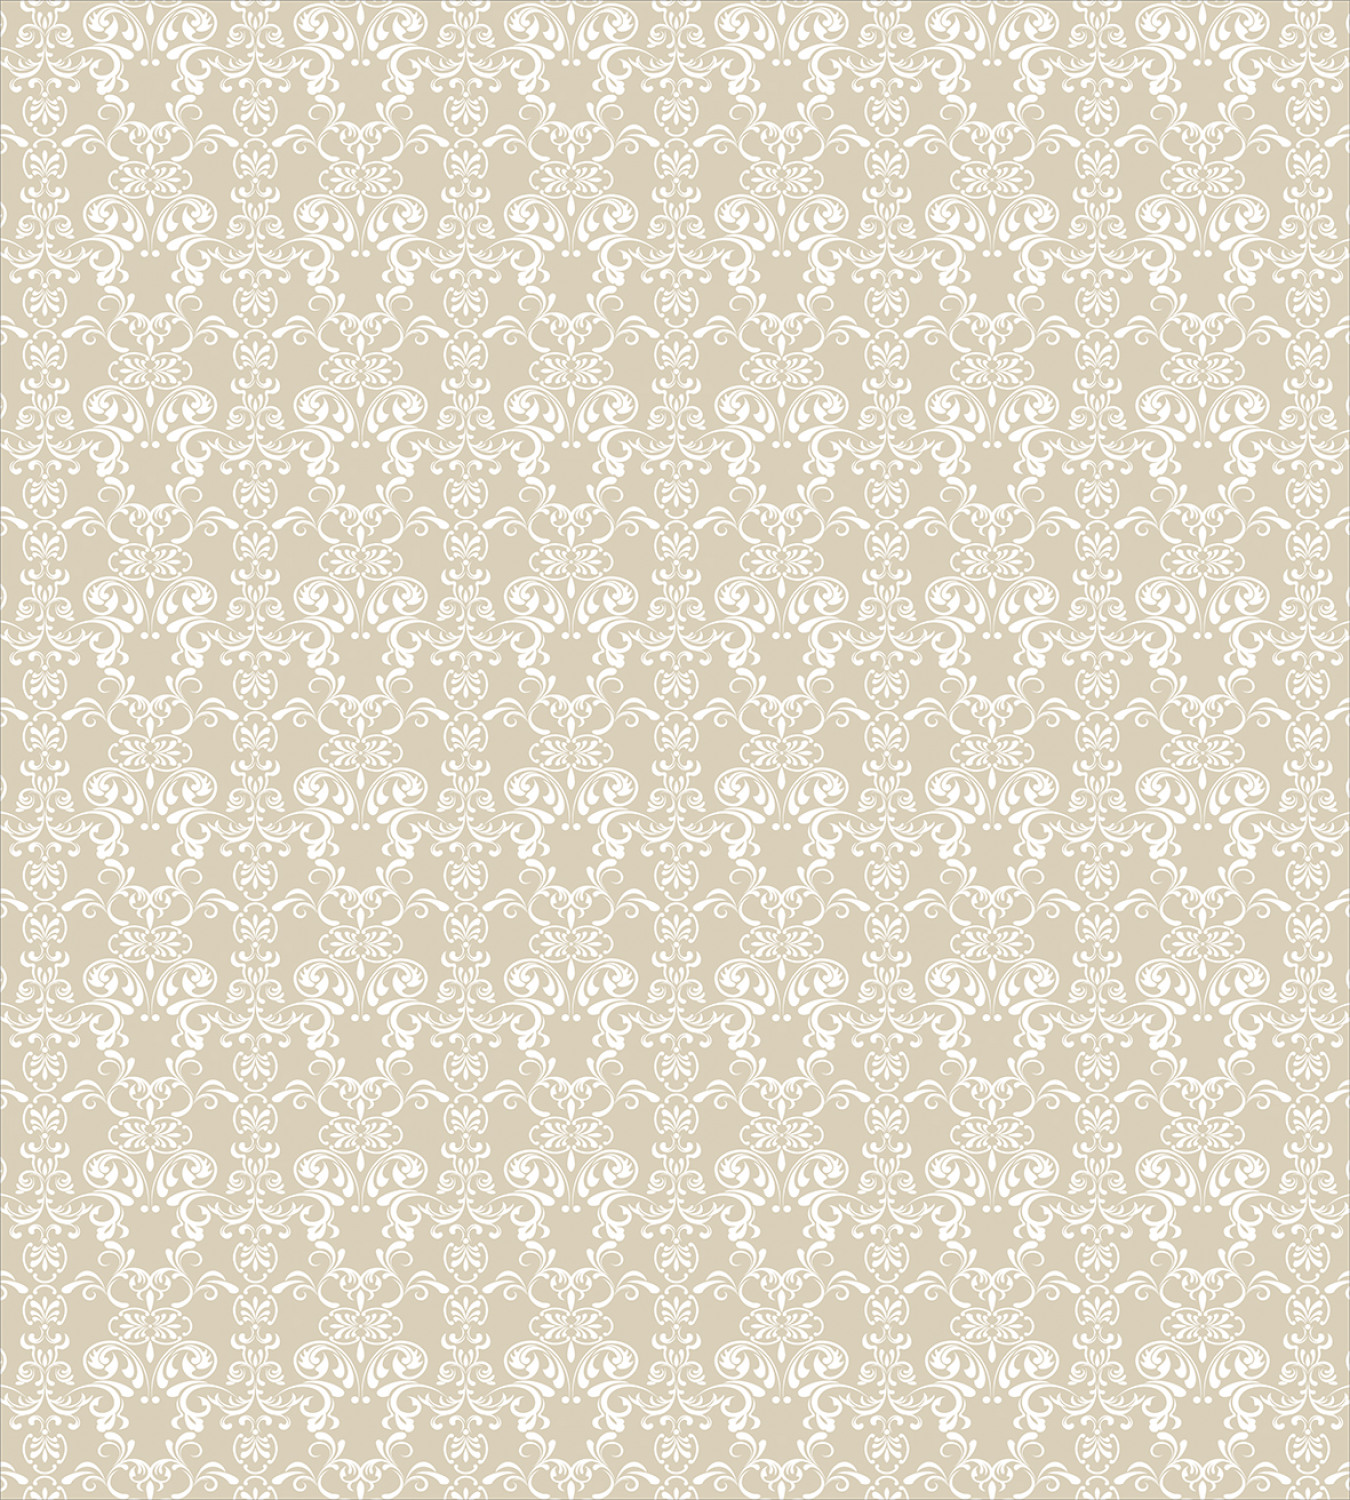 Beige-Duvet-Cover-Set-with-Pillow-Shams-Traditional-Lace-Design-Print thumbnail 3